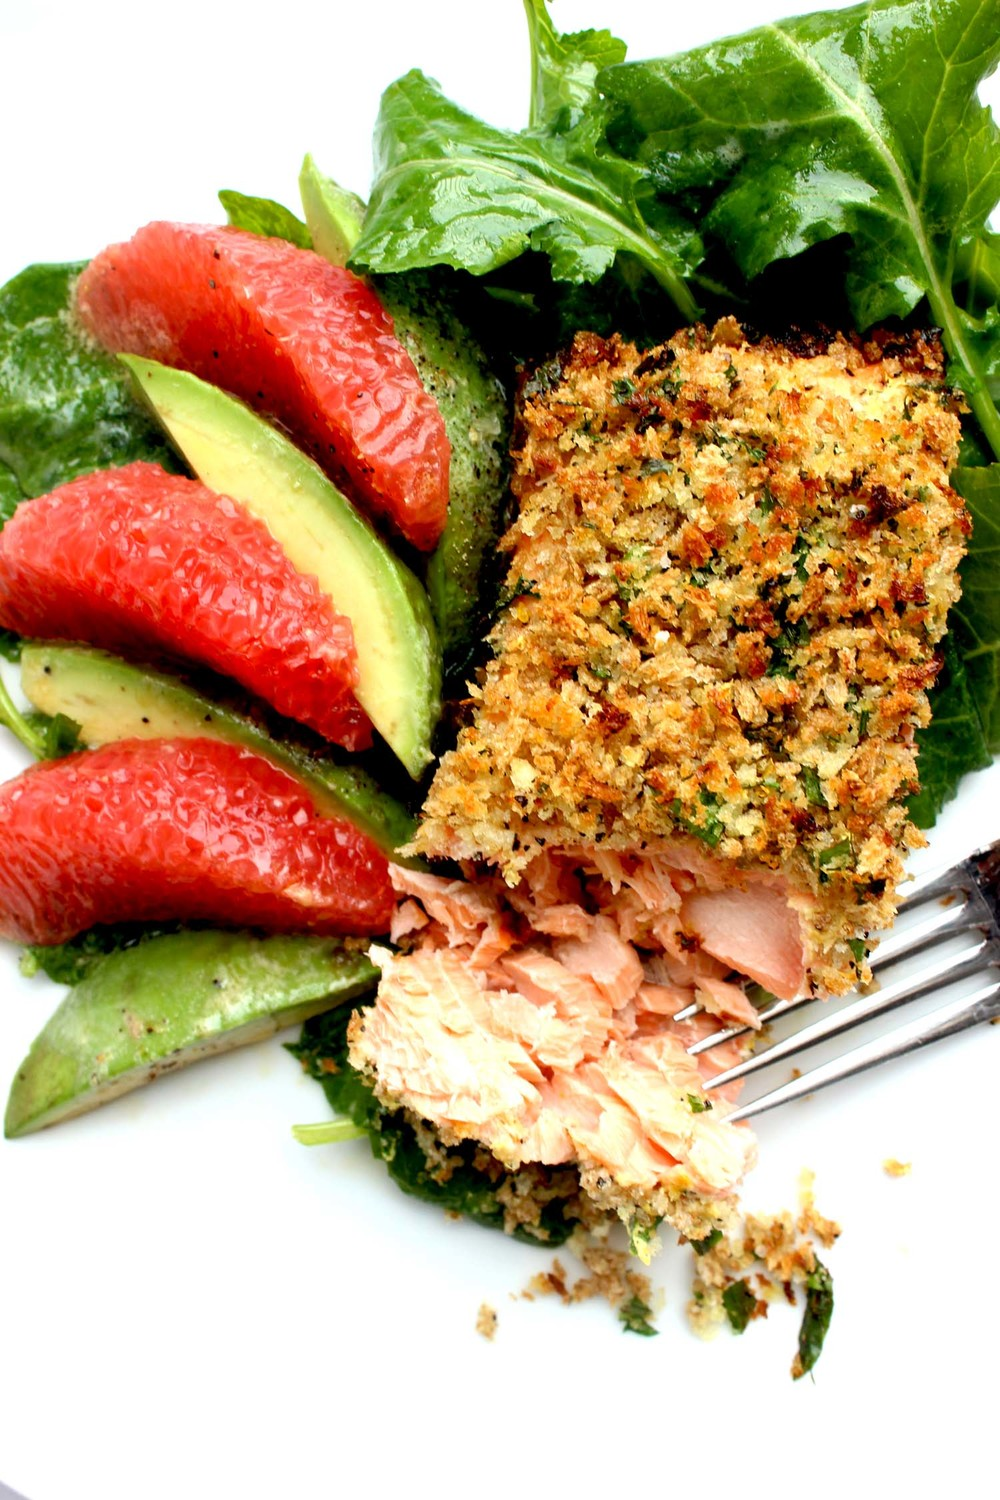 Panko Crusted Salmon | Image: Laura Messersmith